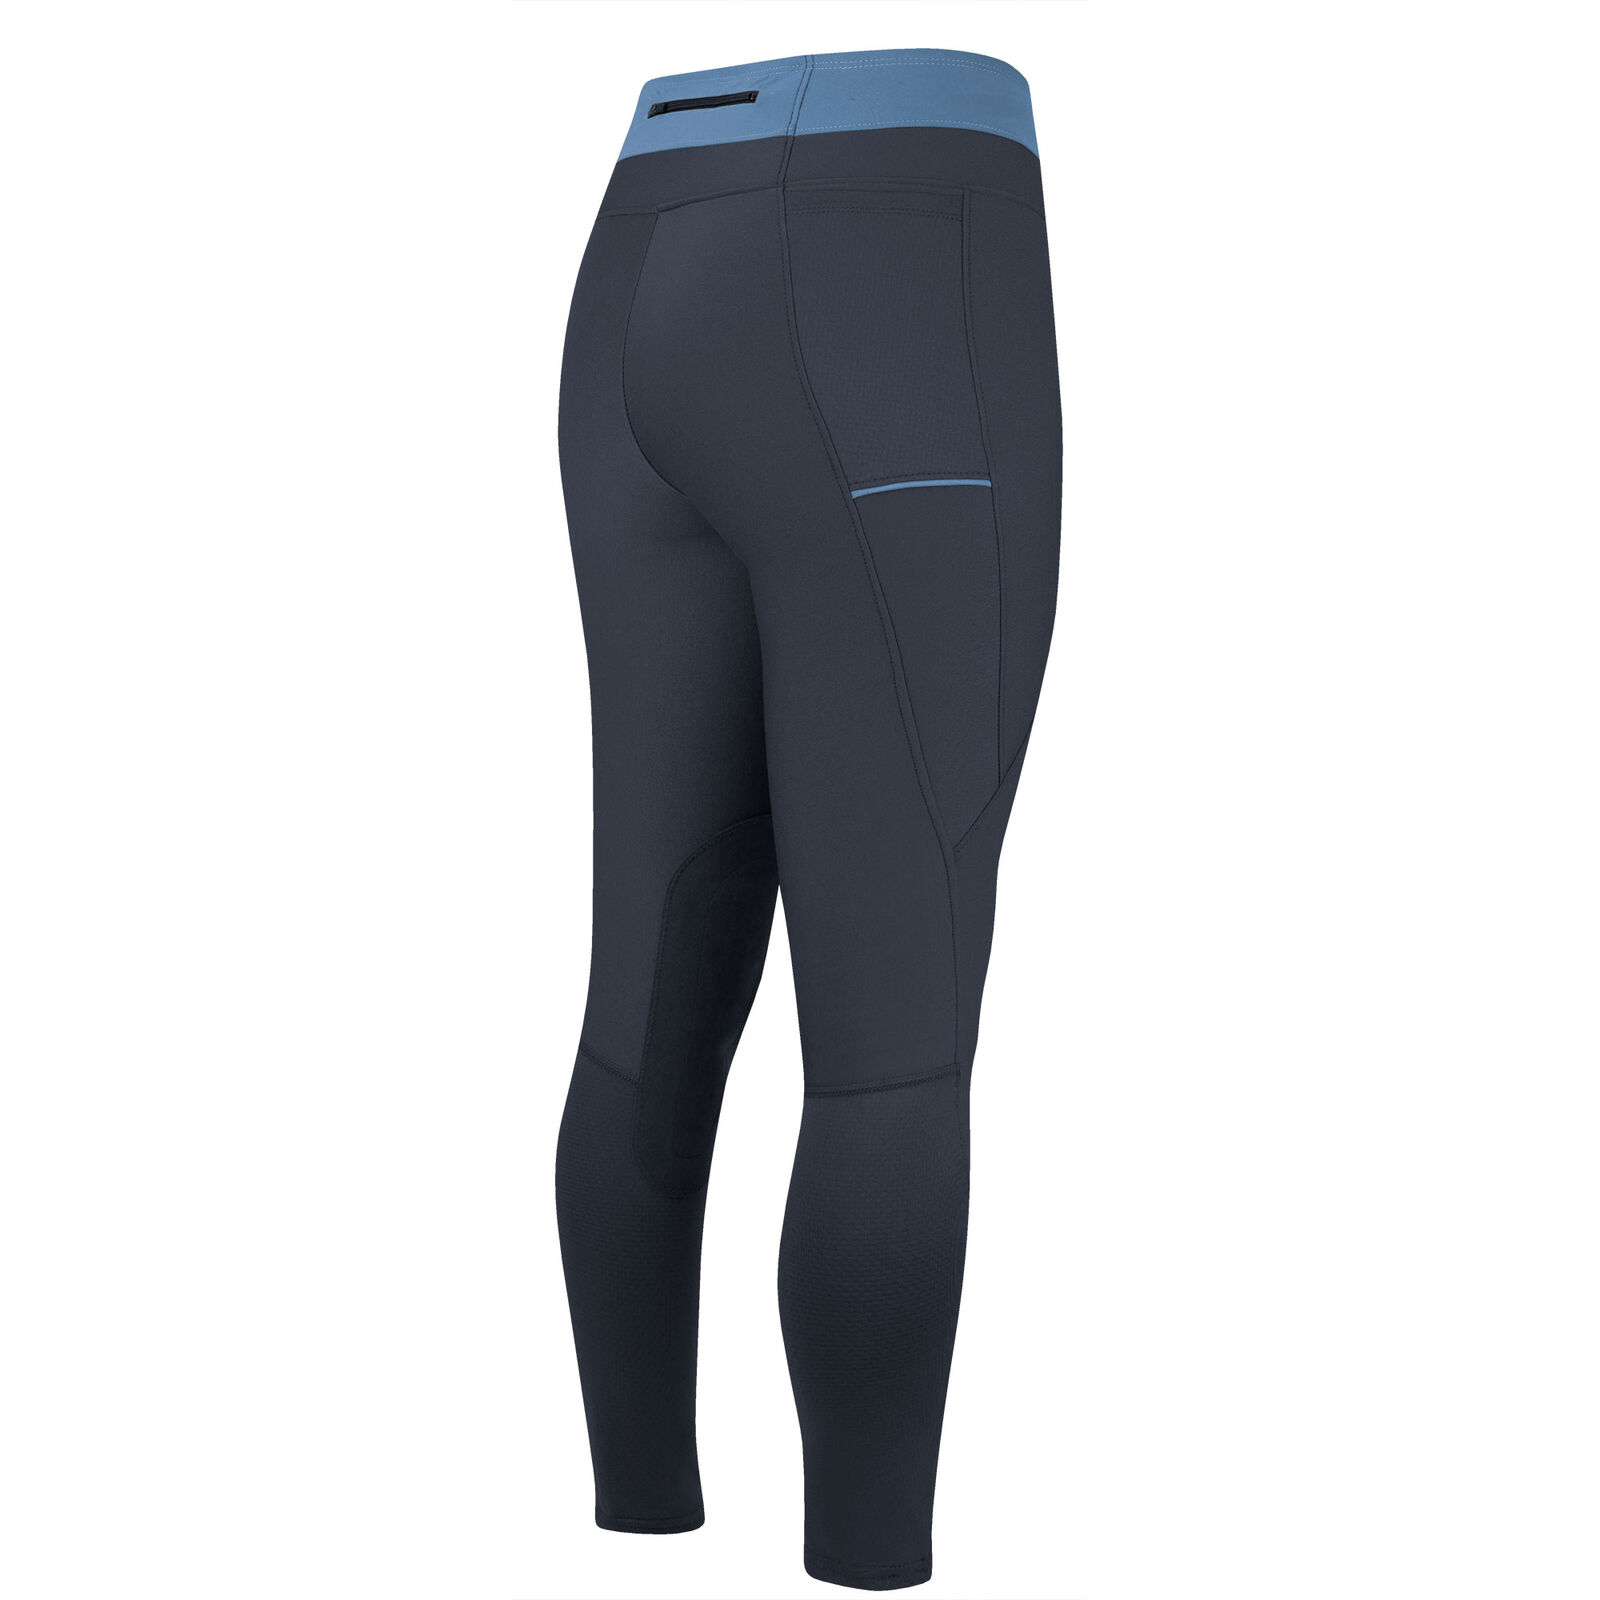 Irideon Power Stretch Bandit Riding Tights with Contrast Waistband